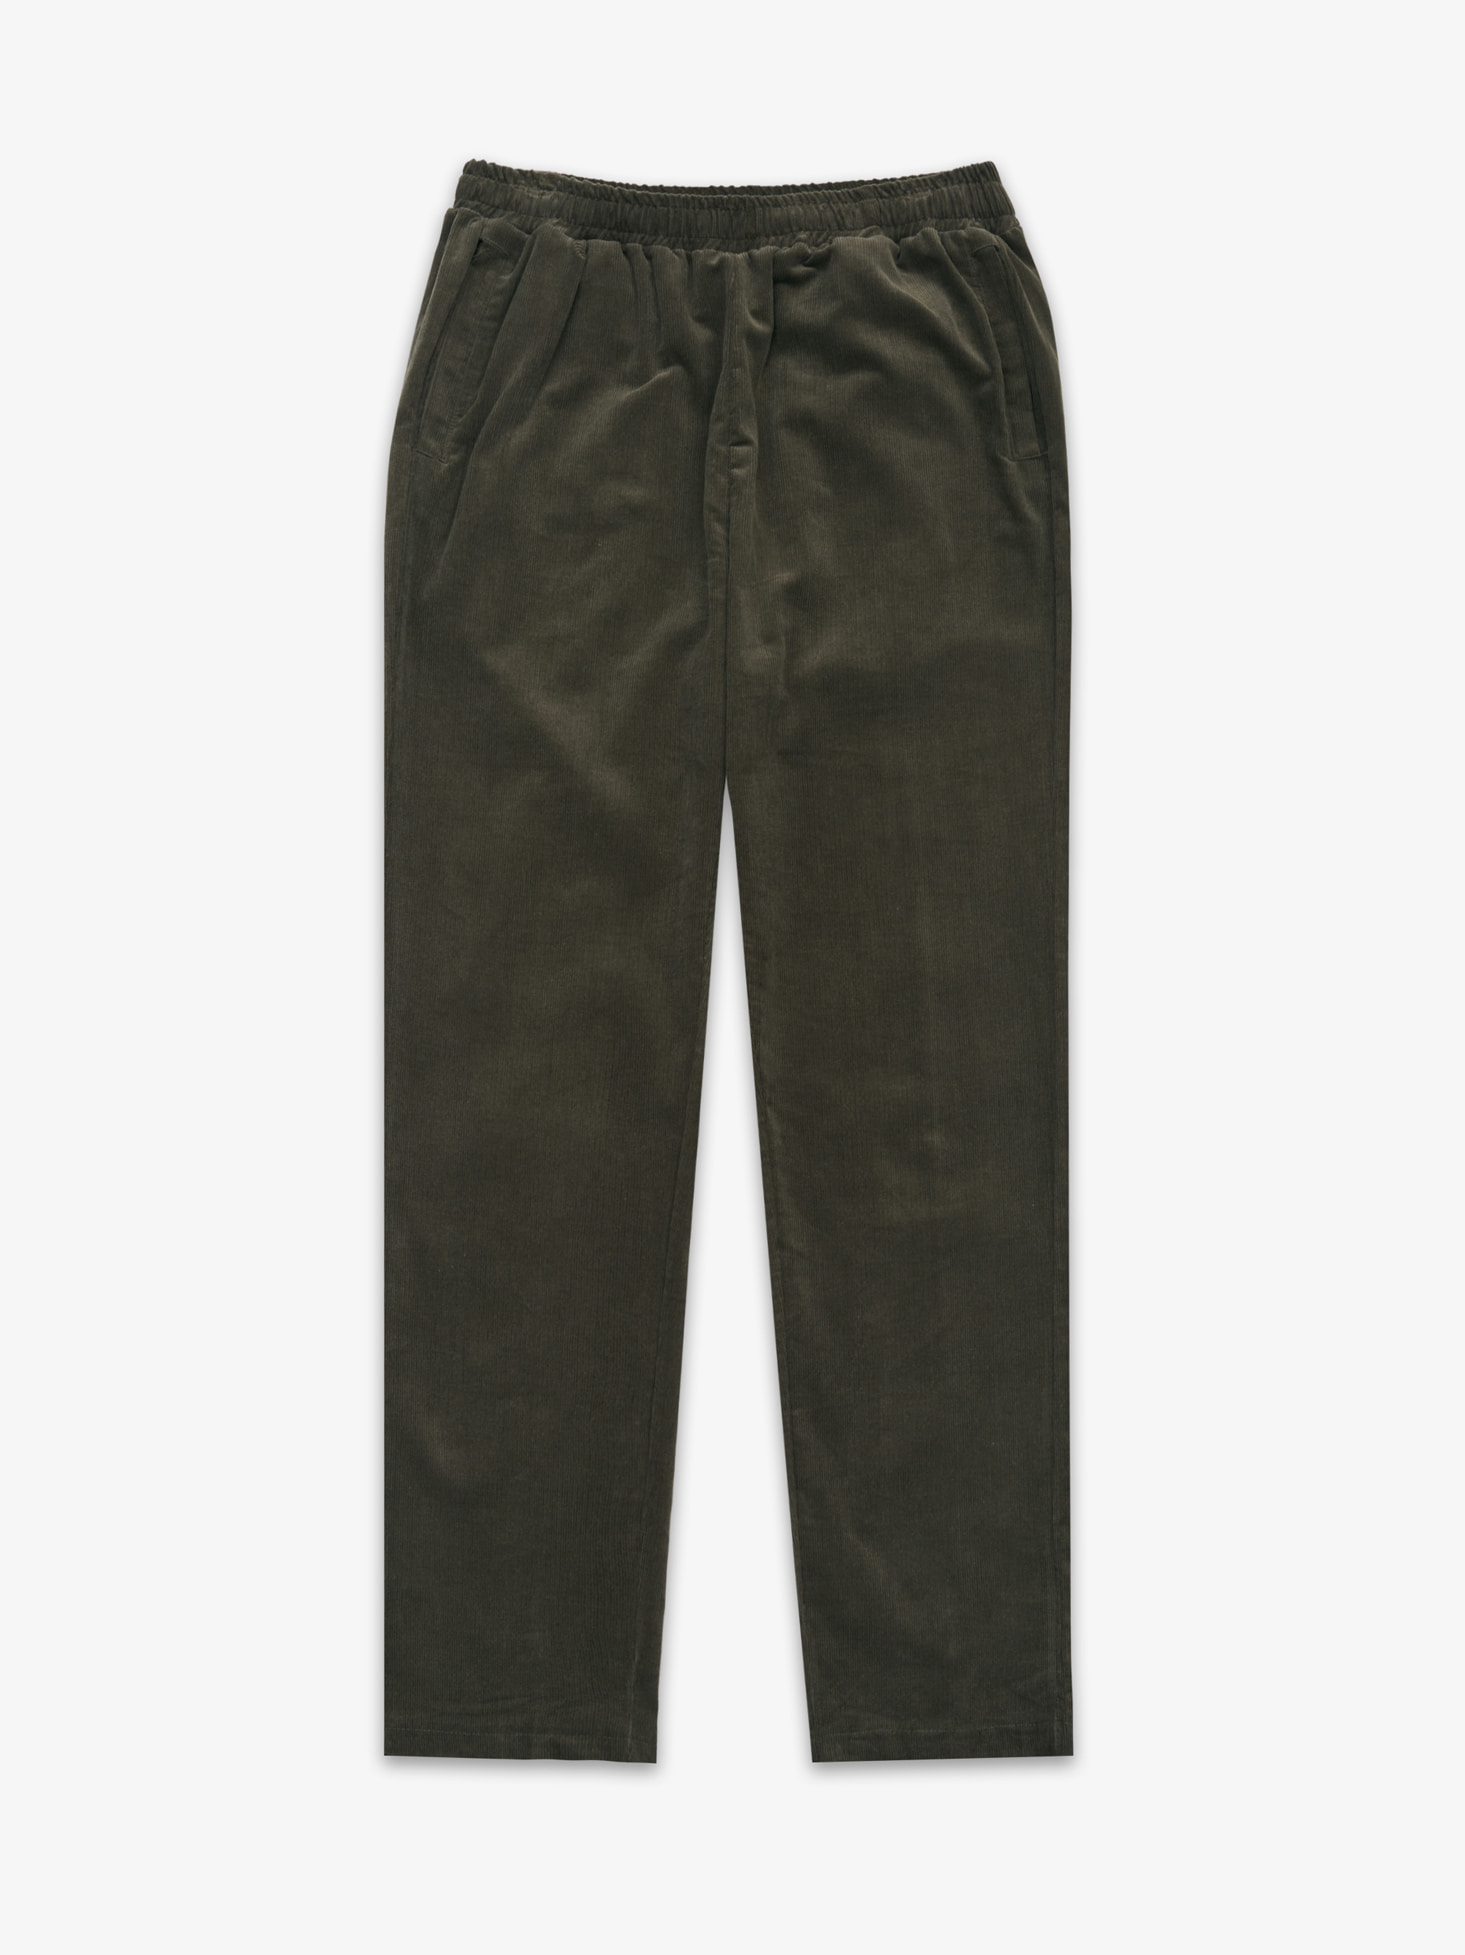 3-DIMENSIONAL PANTS(DARK OLIVE)